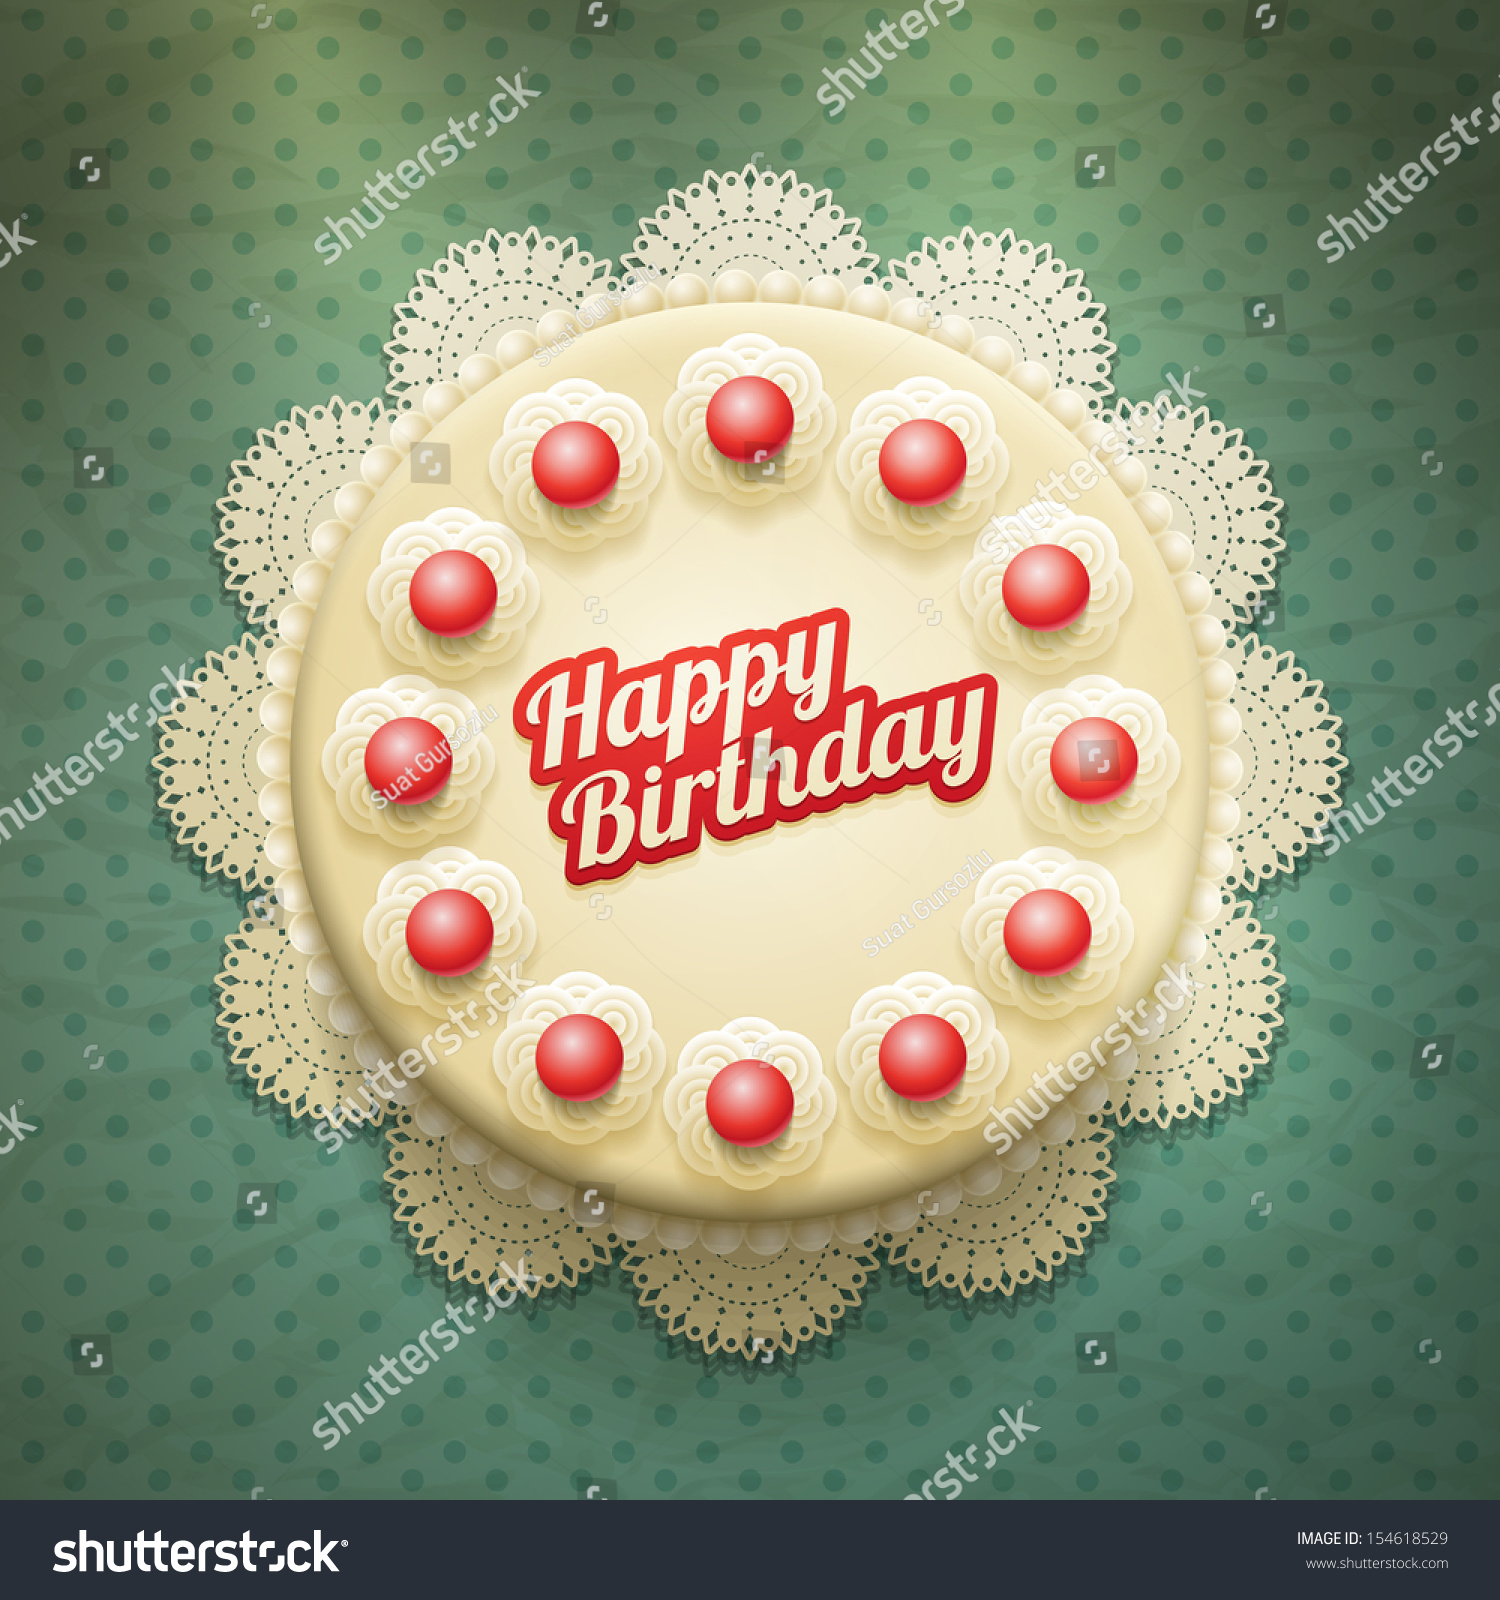 Vector White Birthday Cake With Cream And Cherries View From Above Elements Are Layered